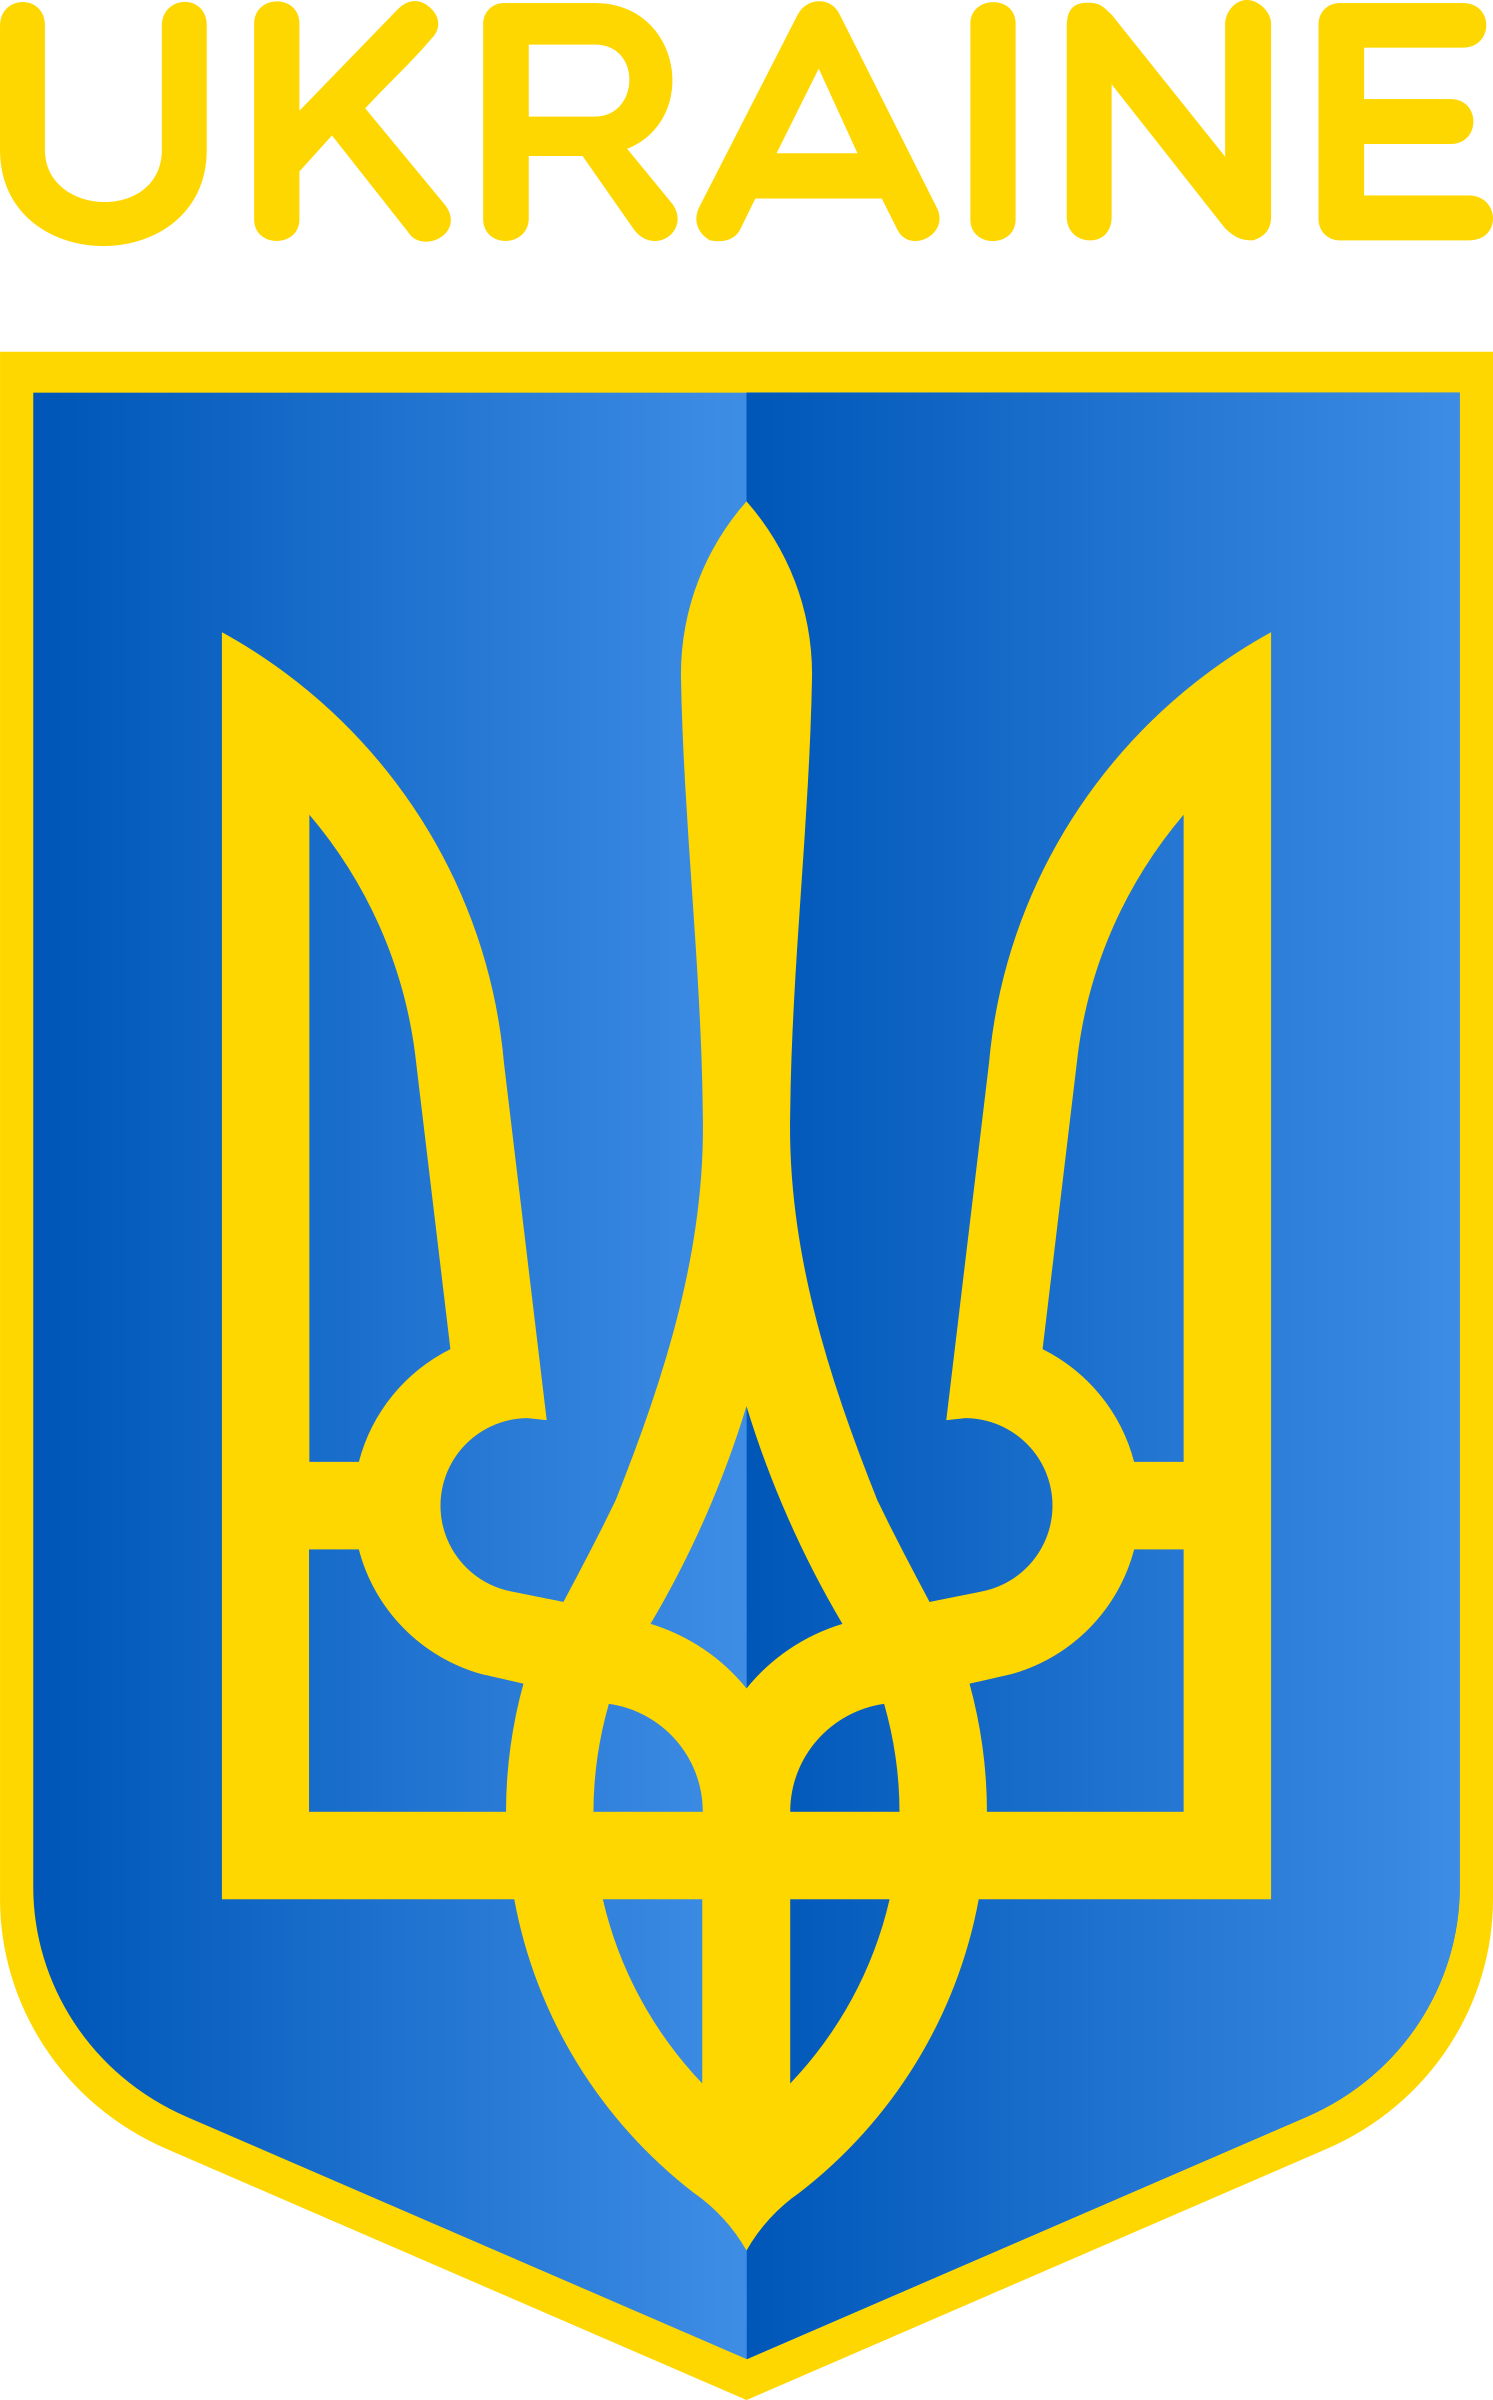 Ukraine Coat of Arms by grin